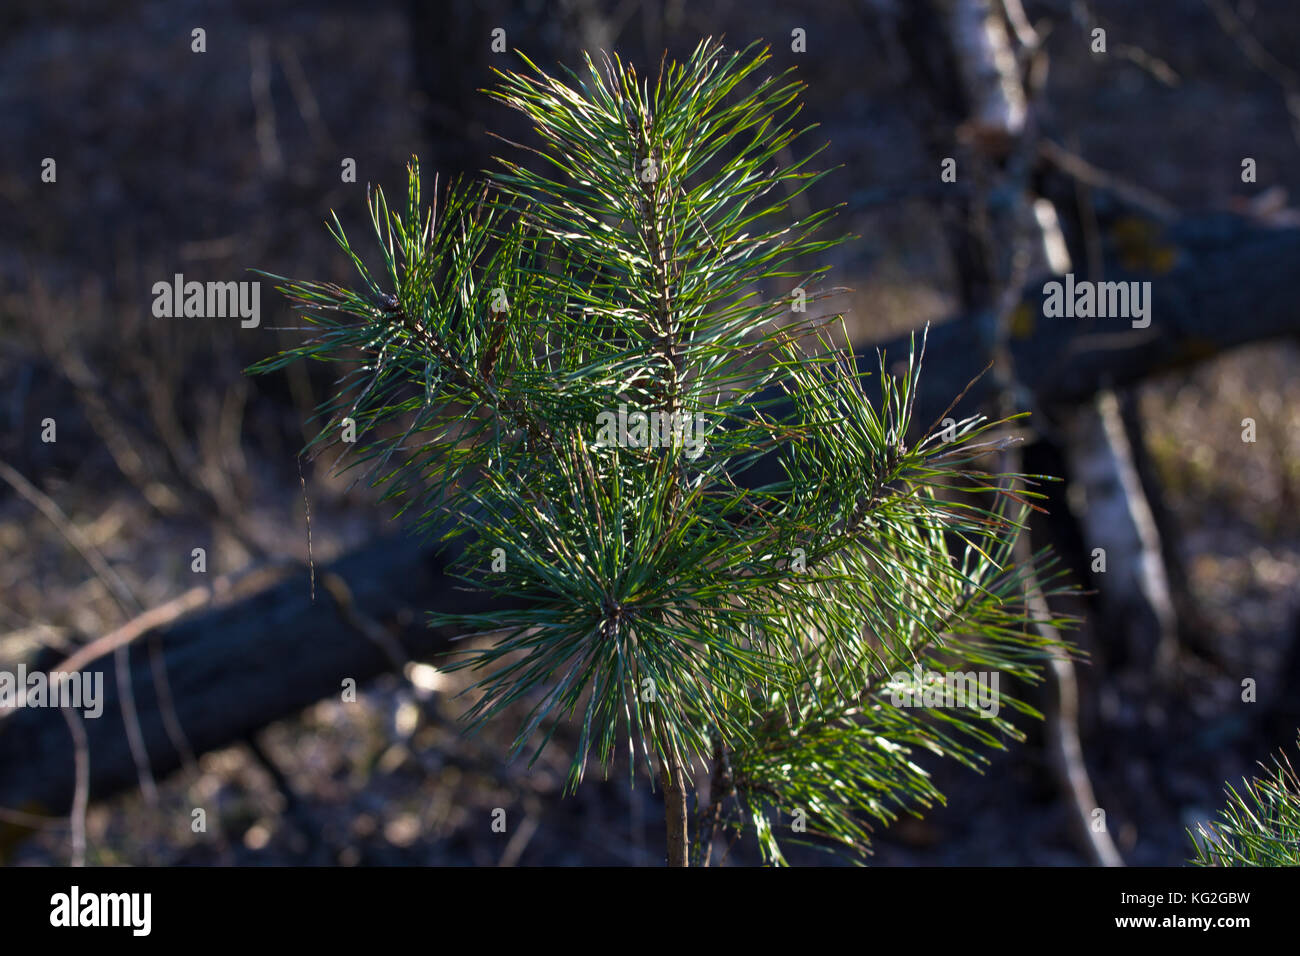 One young pine tree. Fir branches. Spruce background. Coniferous forest. The family of gymnosperms. - Stock Image